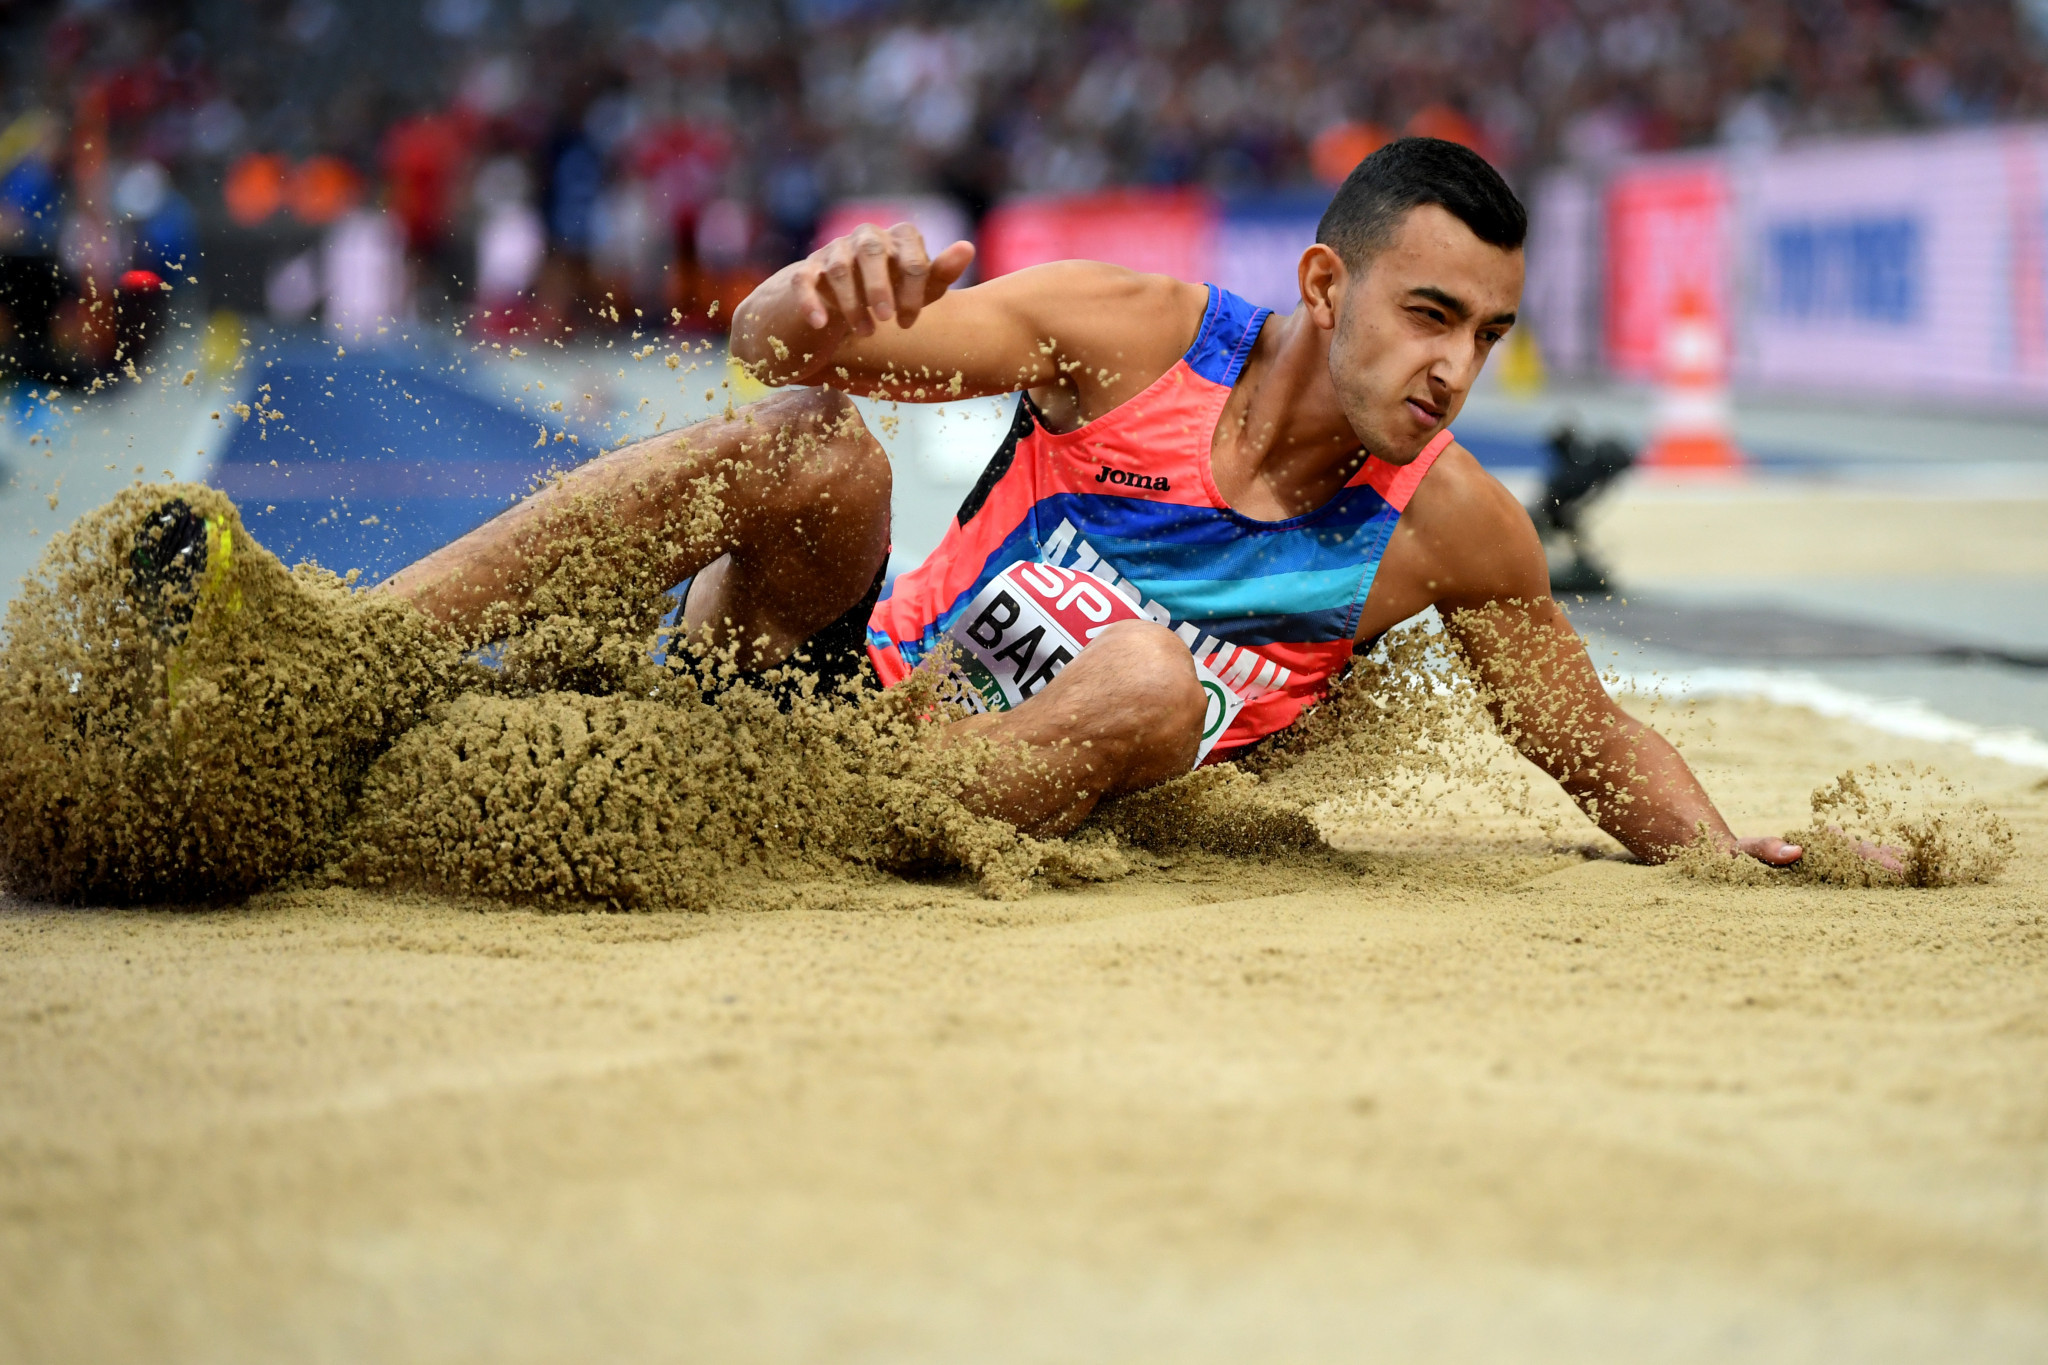 Nazim Babayev won the triple jump event at the Naples 2019 Summer Universiade ©Getty Images